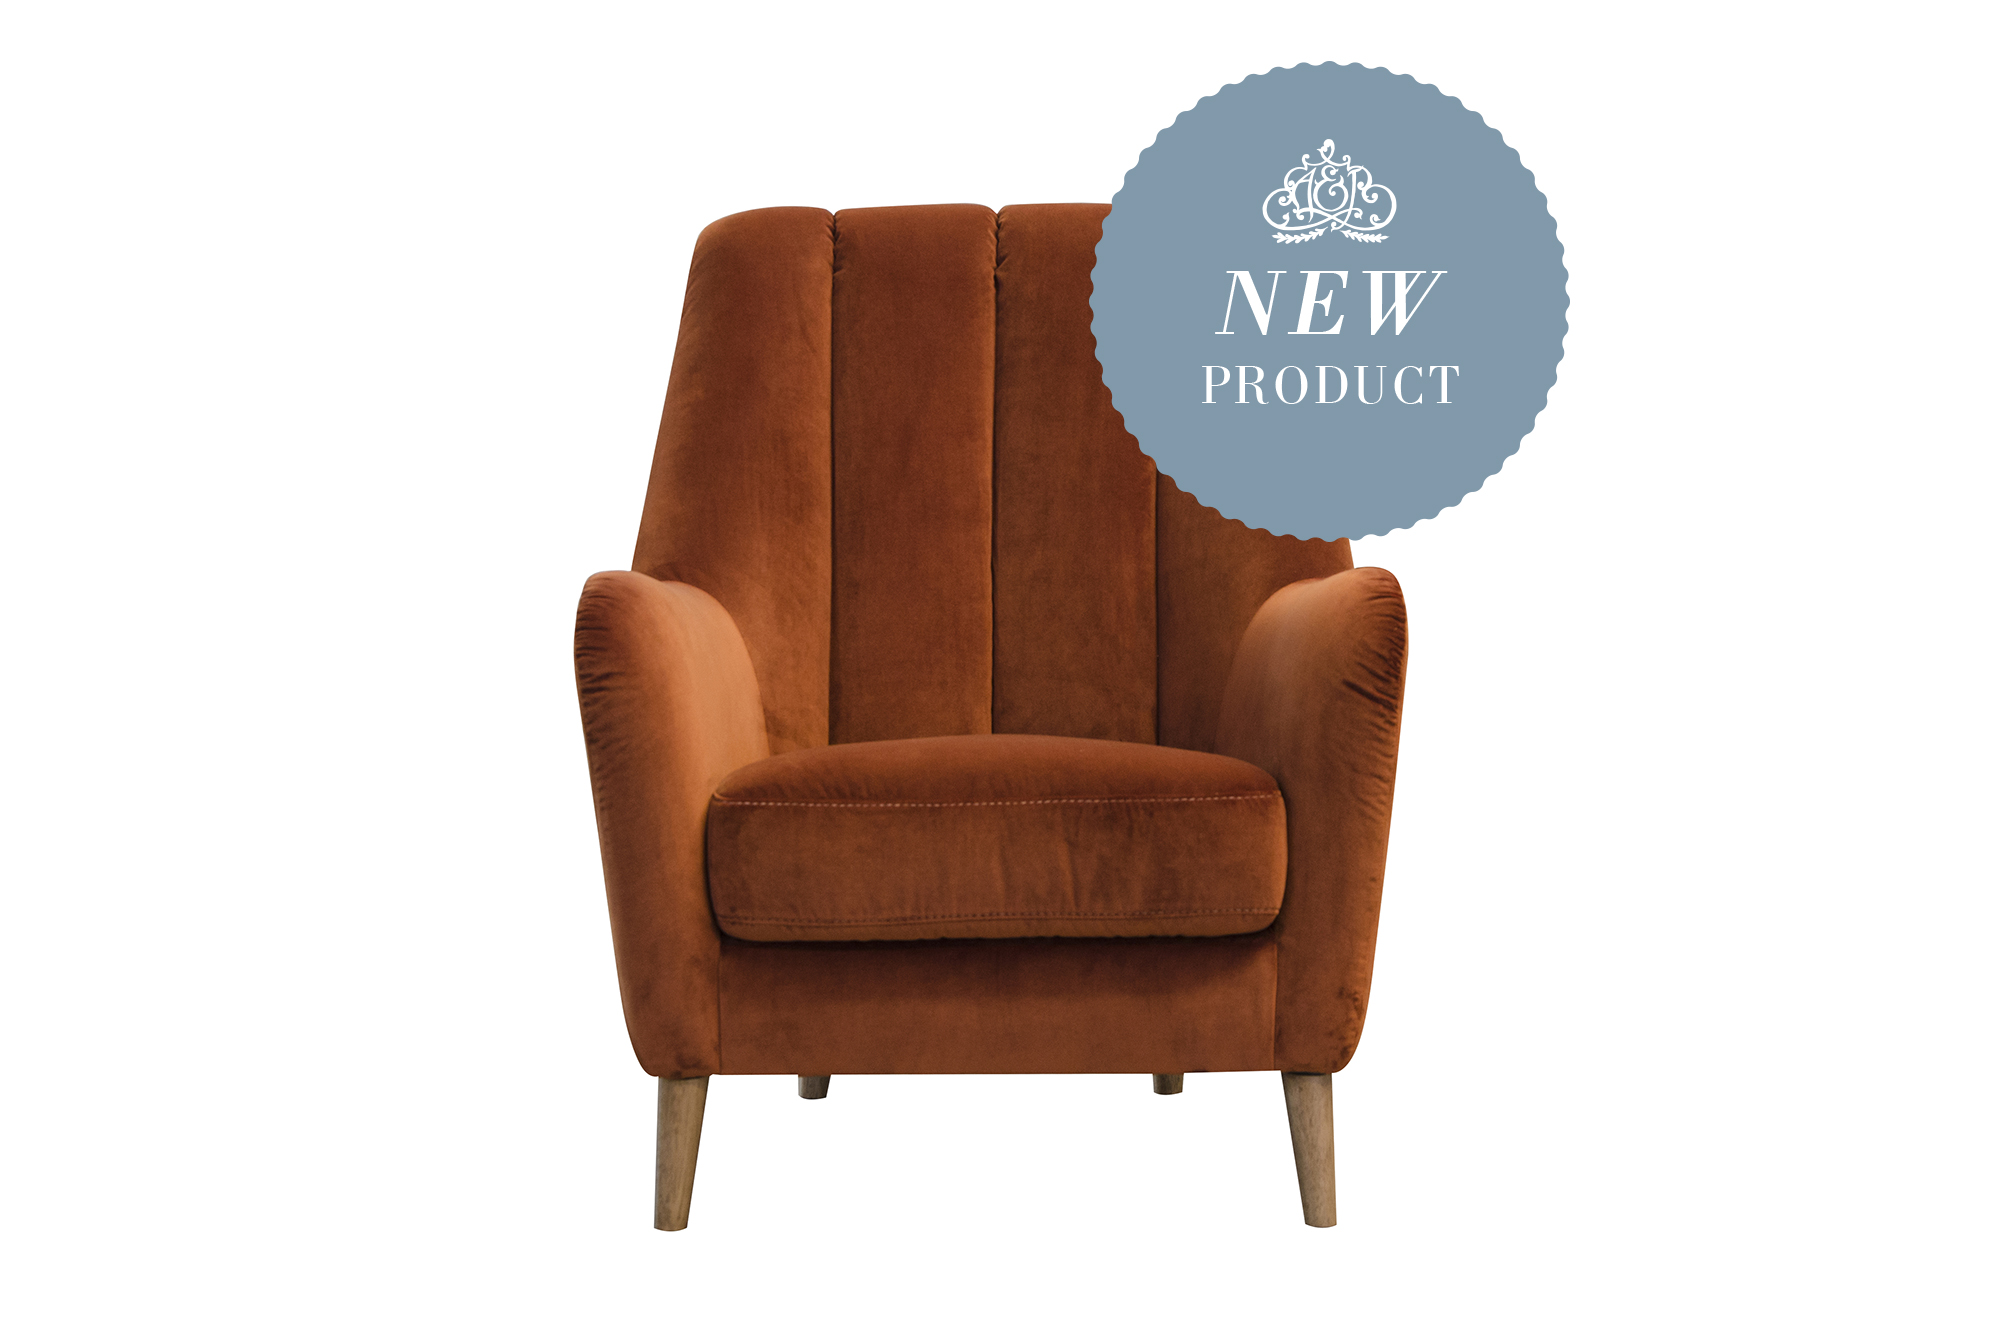 Phoebe Chair in Venetian Marmalade